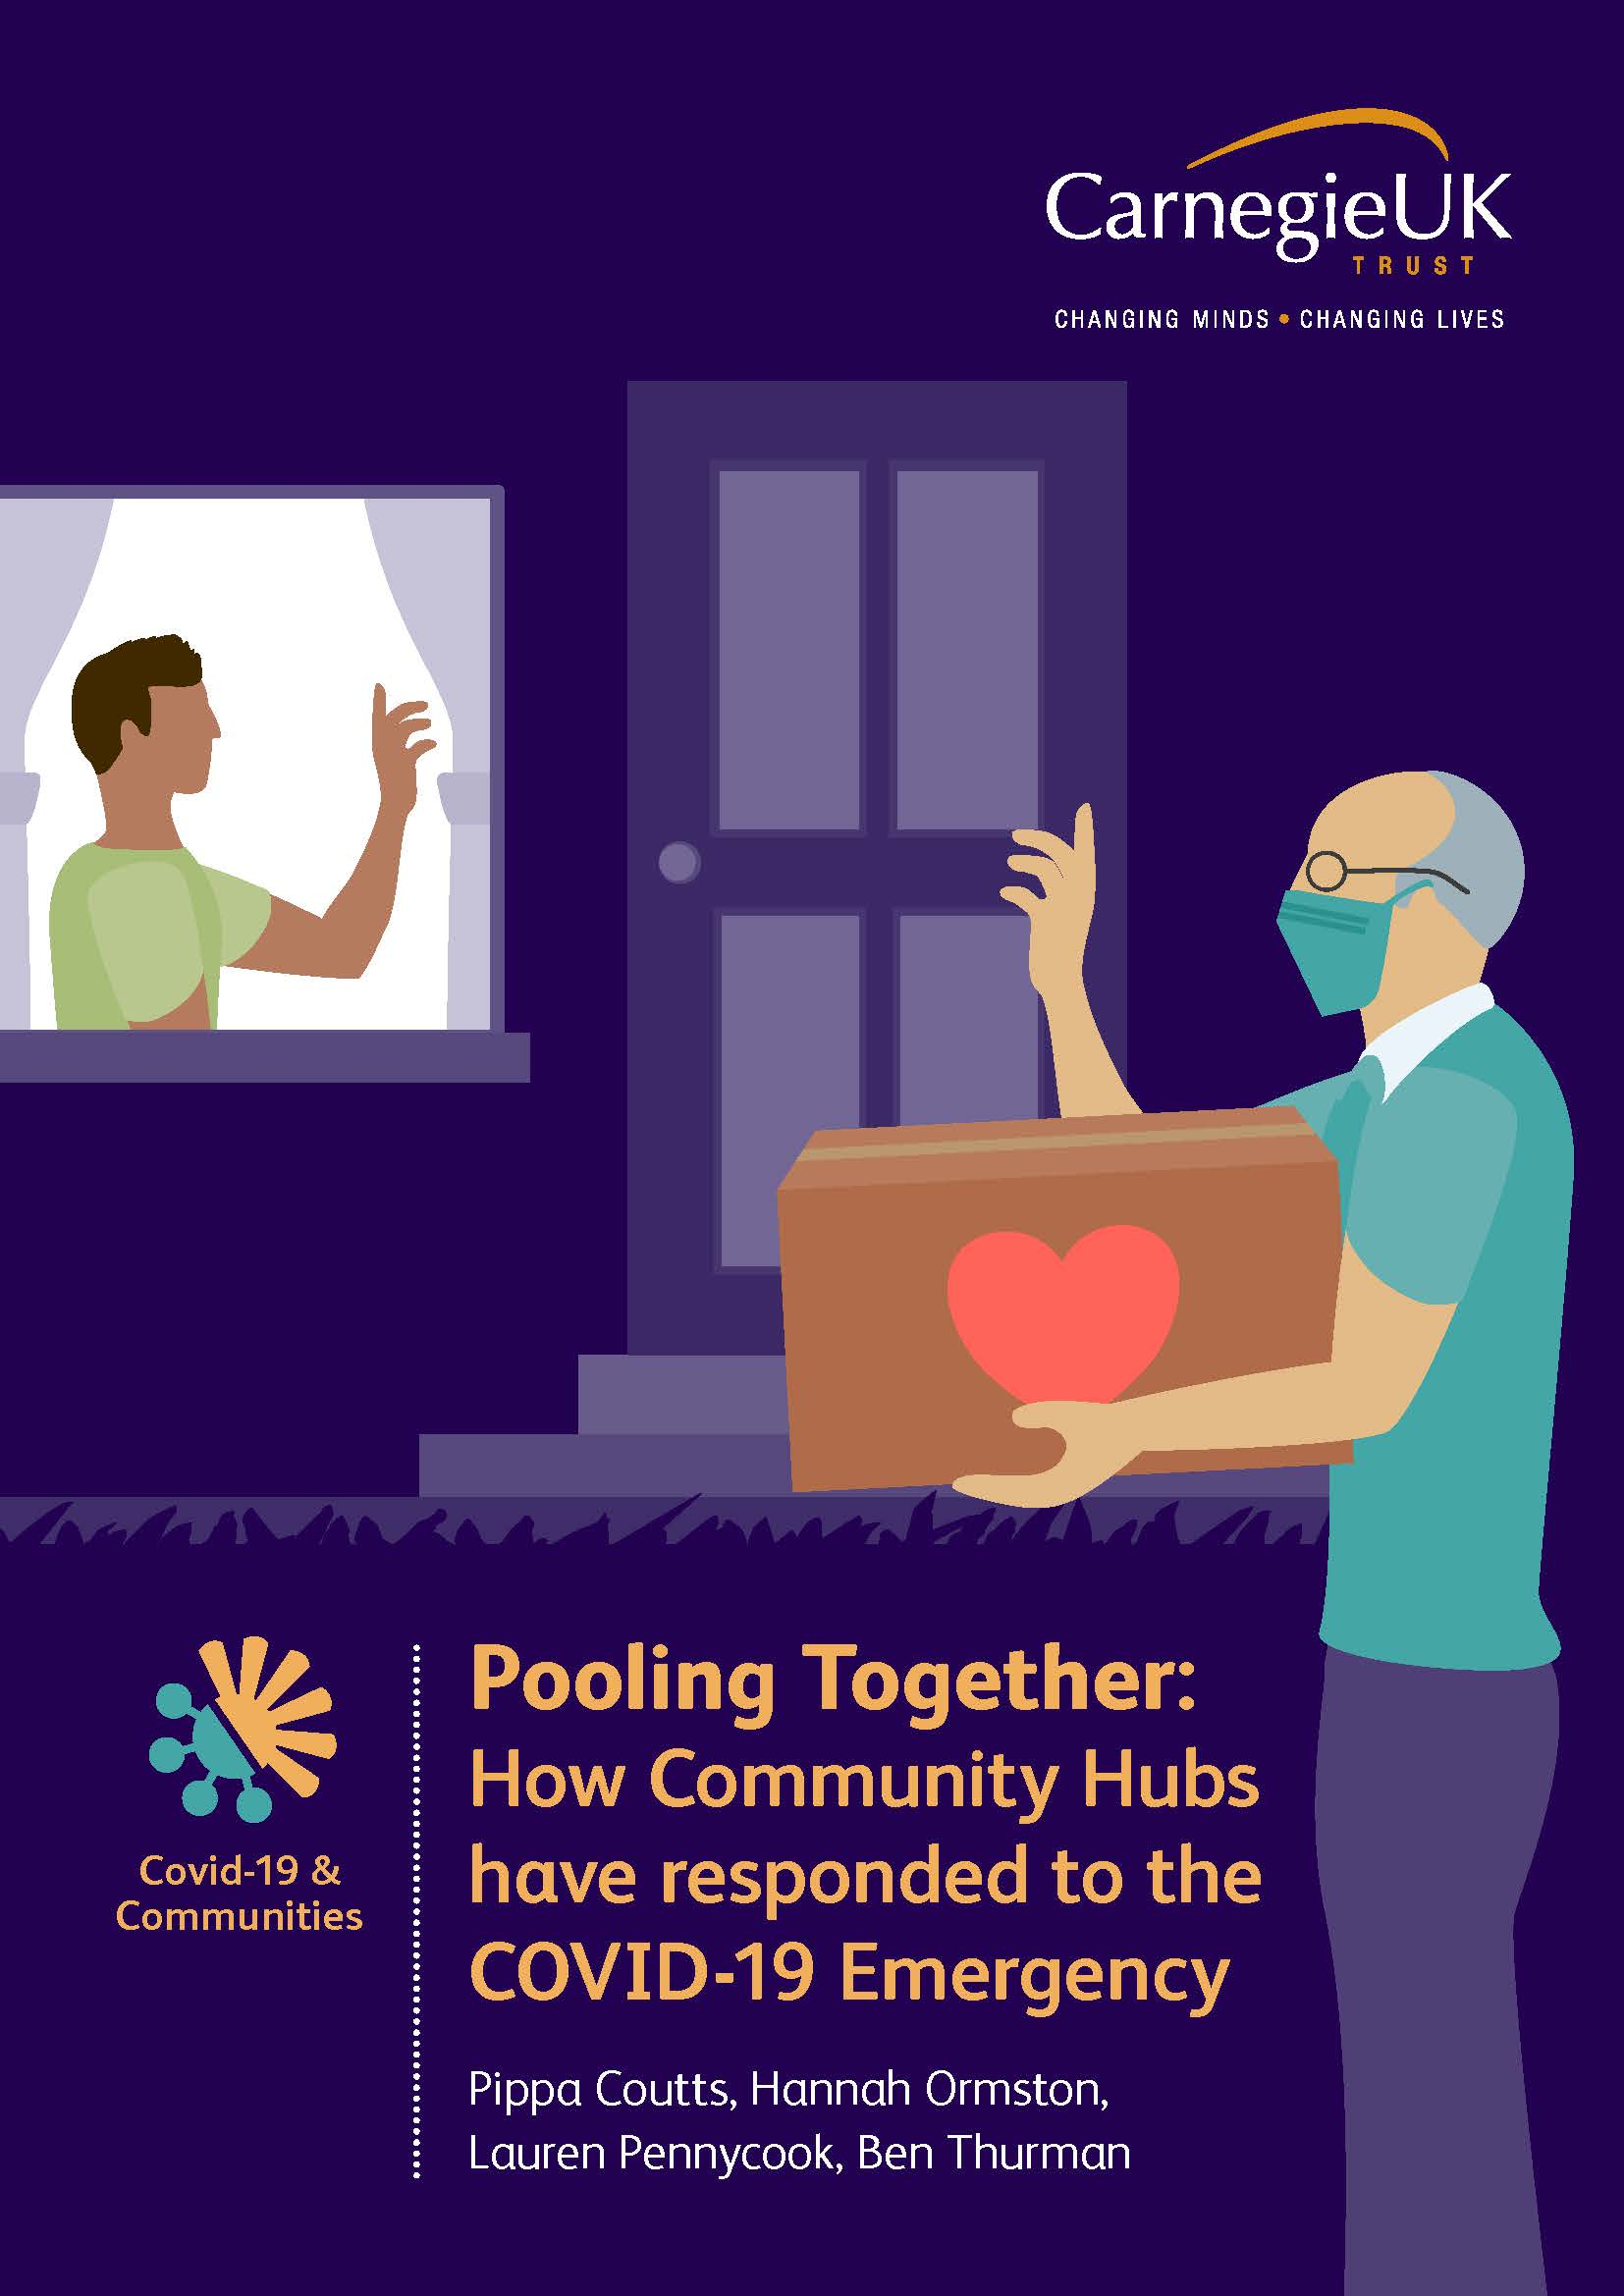 Pooling Together: How Community Hubs have responded to the COVID-19 Emergency